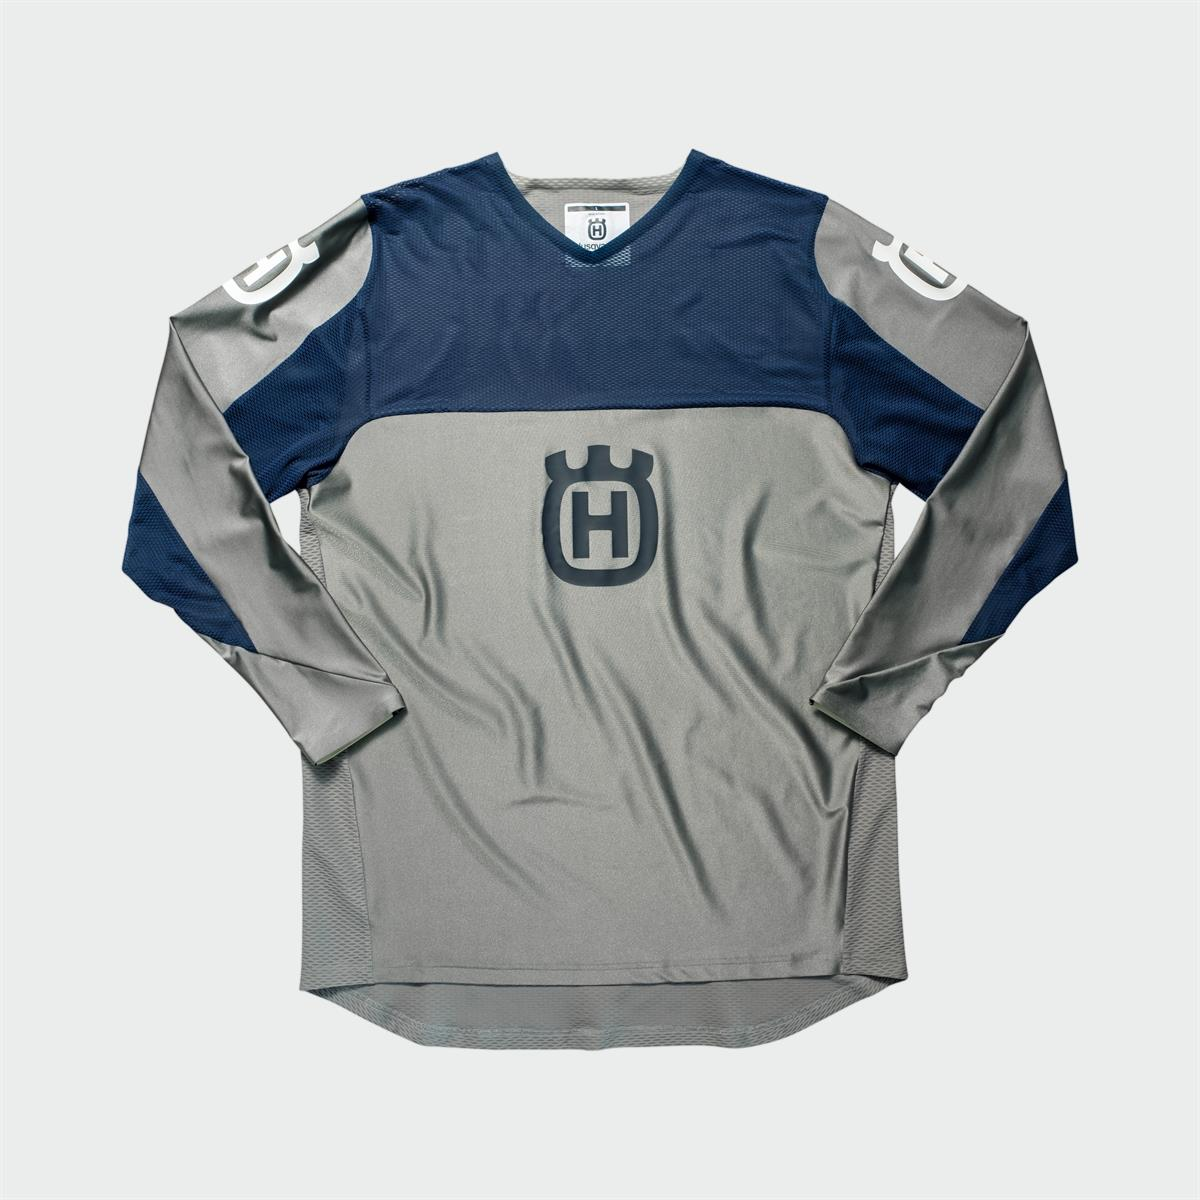 Husqvarna Functional Clothing - RAILED SHIRT GREY